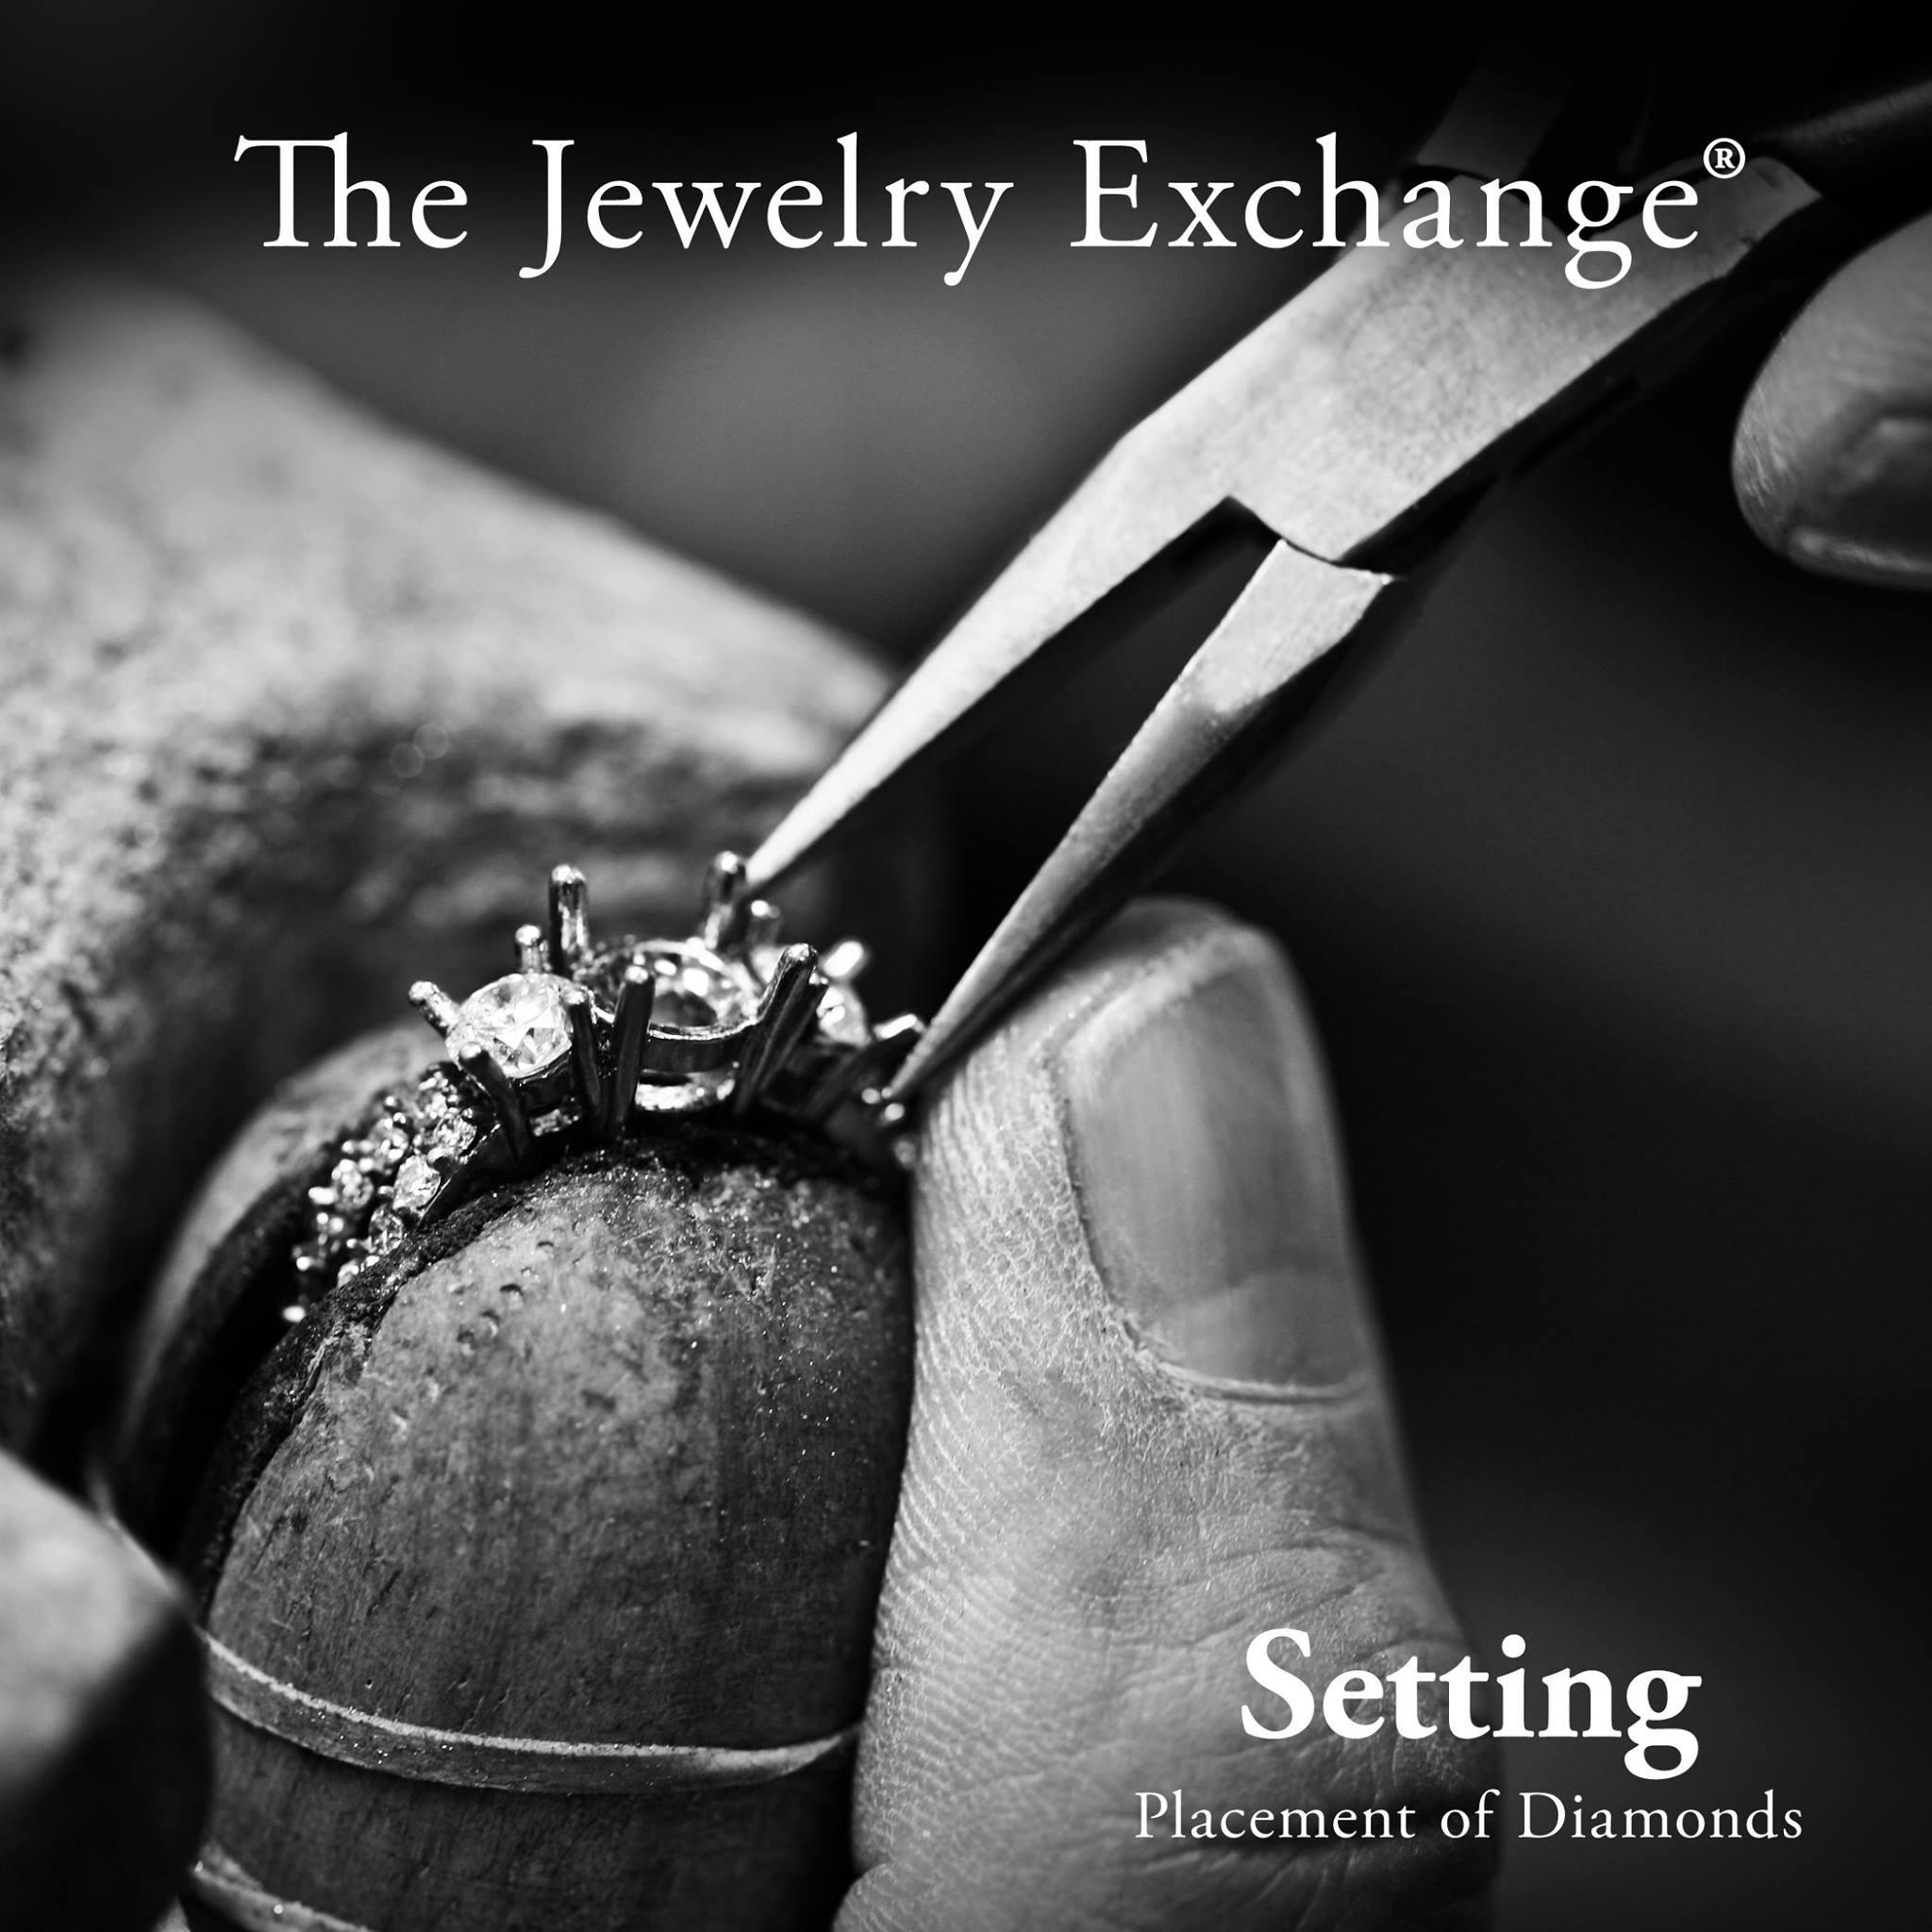 The Jewelry Exchange in New Jersey | Jewelry Store | Engagement Ring Specials image 8